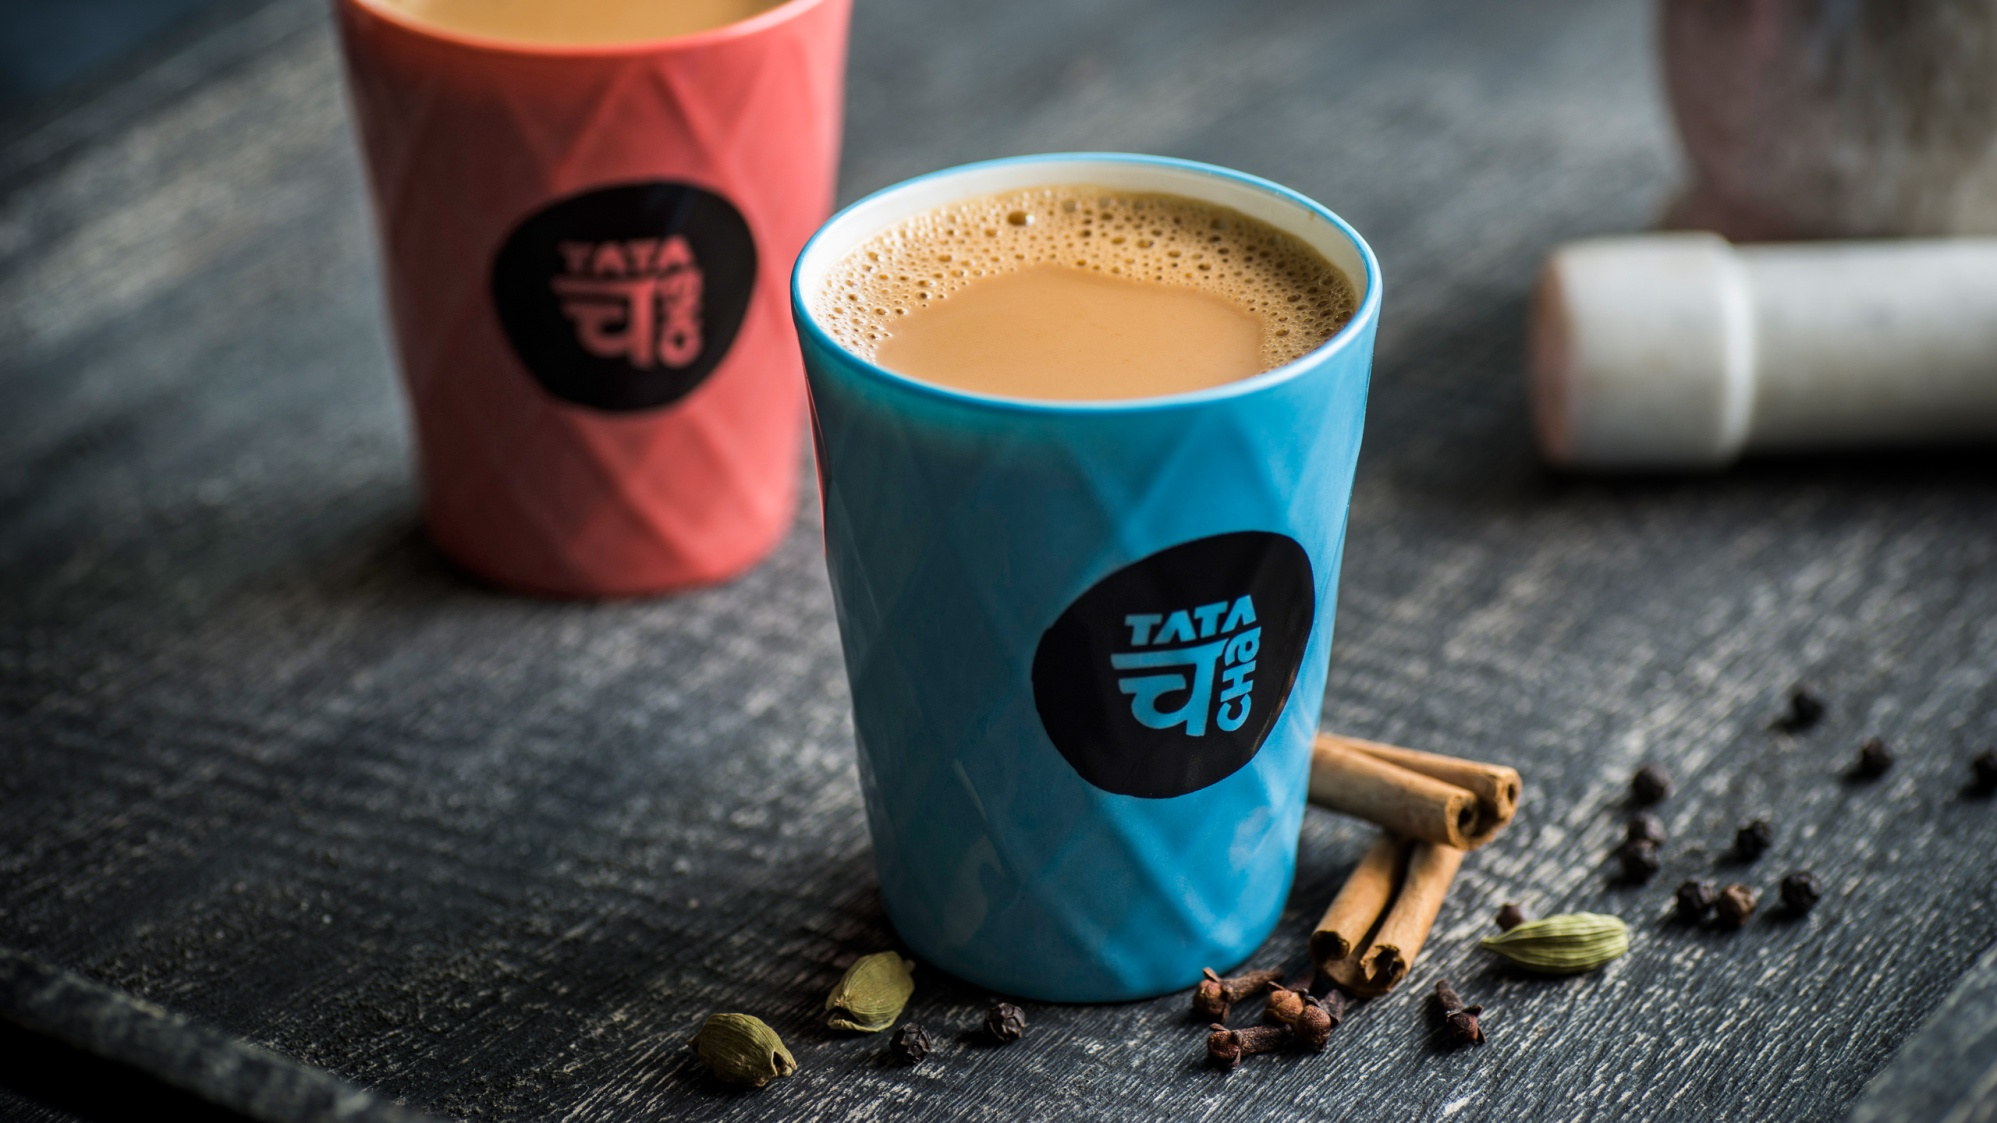 Tata Cha, Serving chai warmth, at an outlet near you!